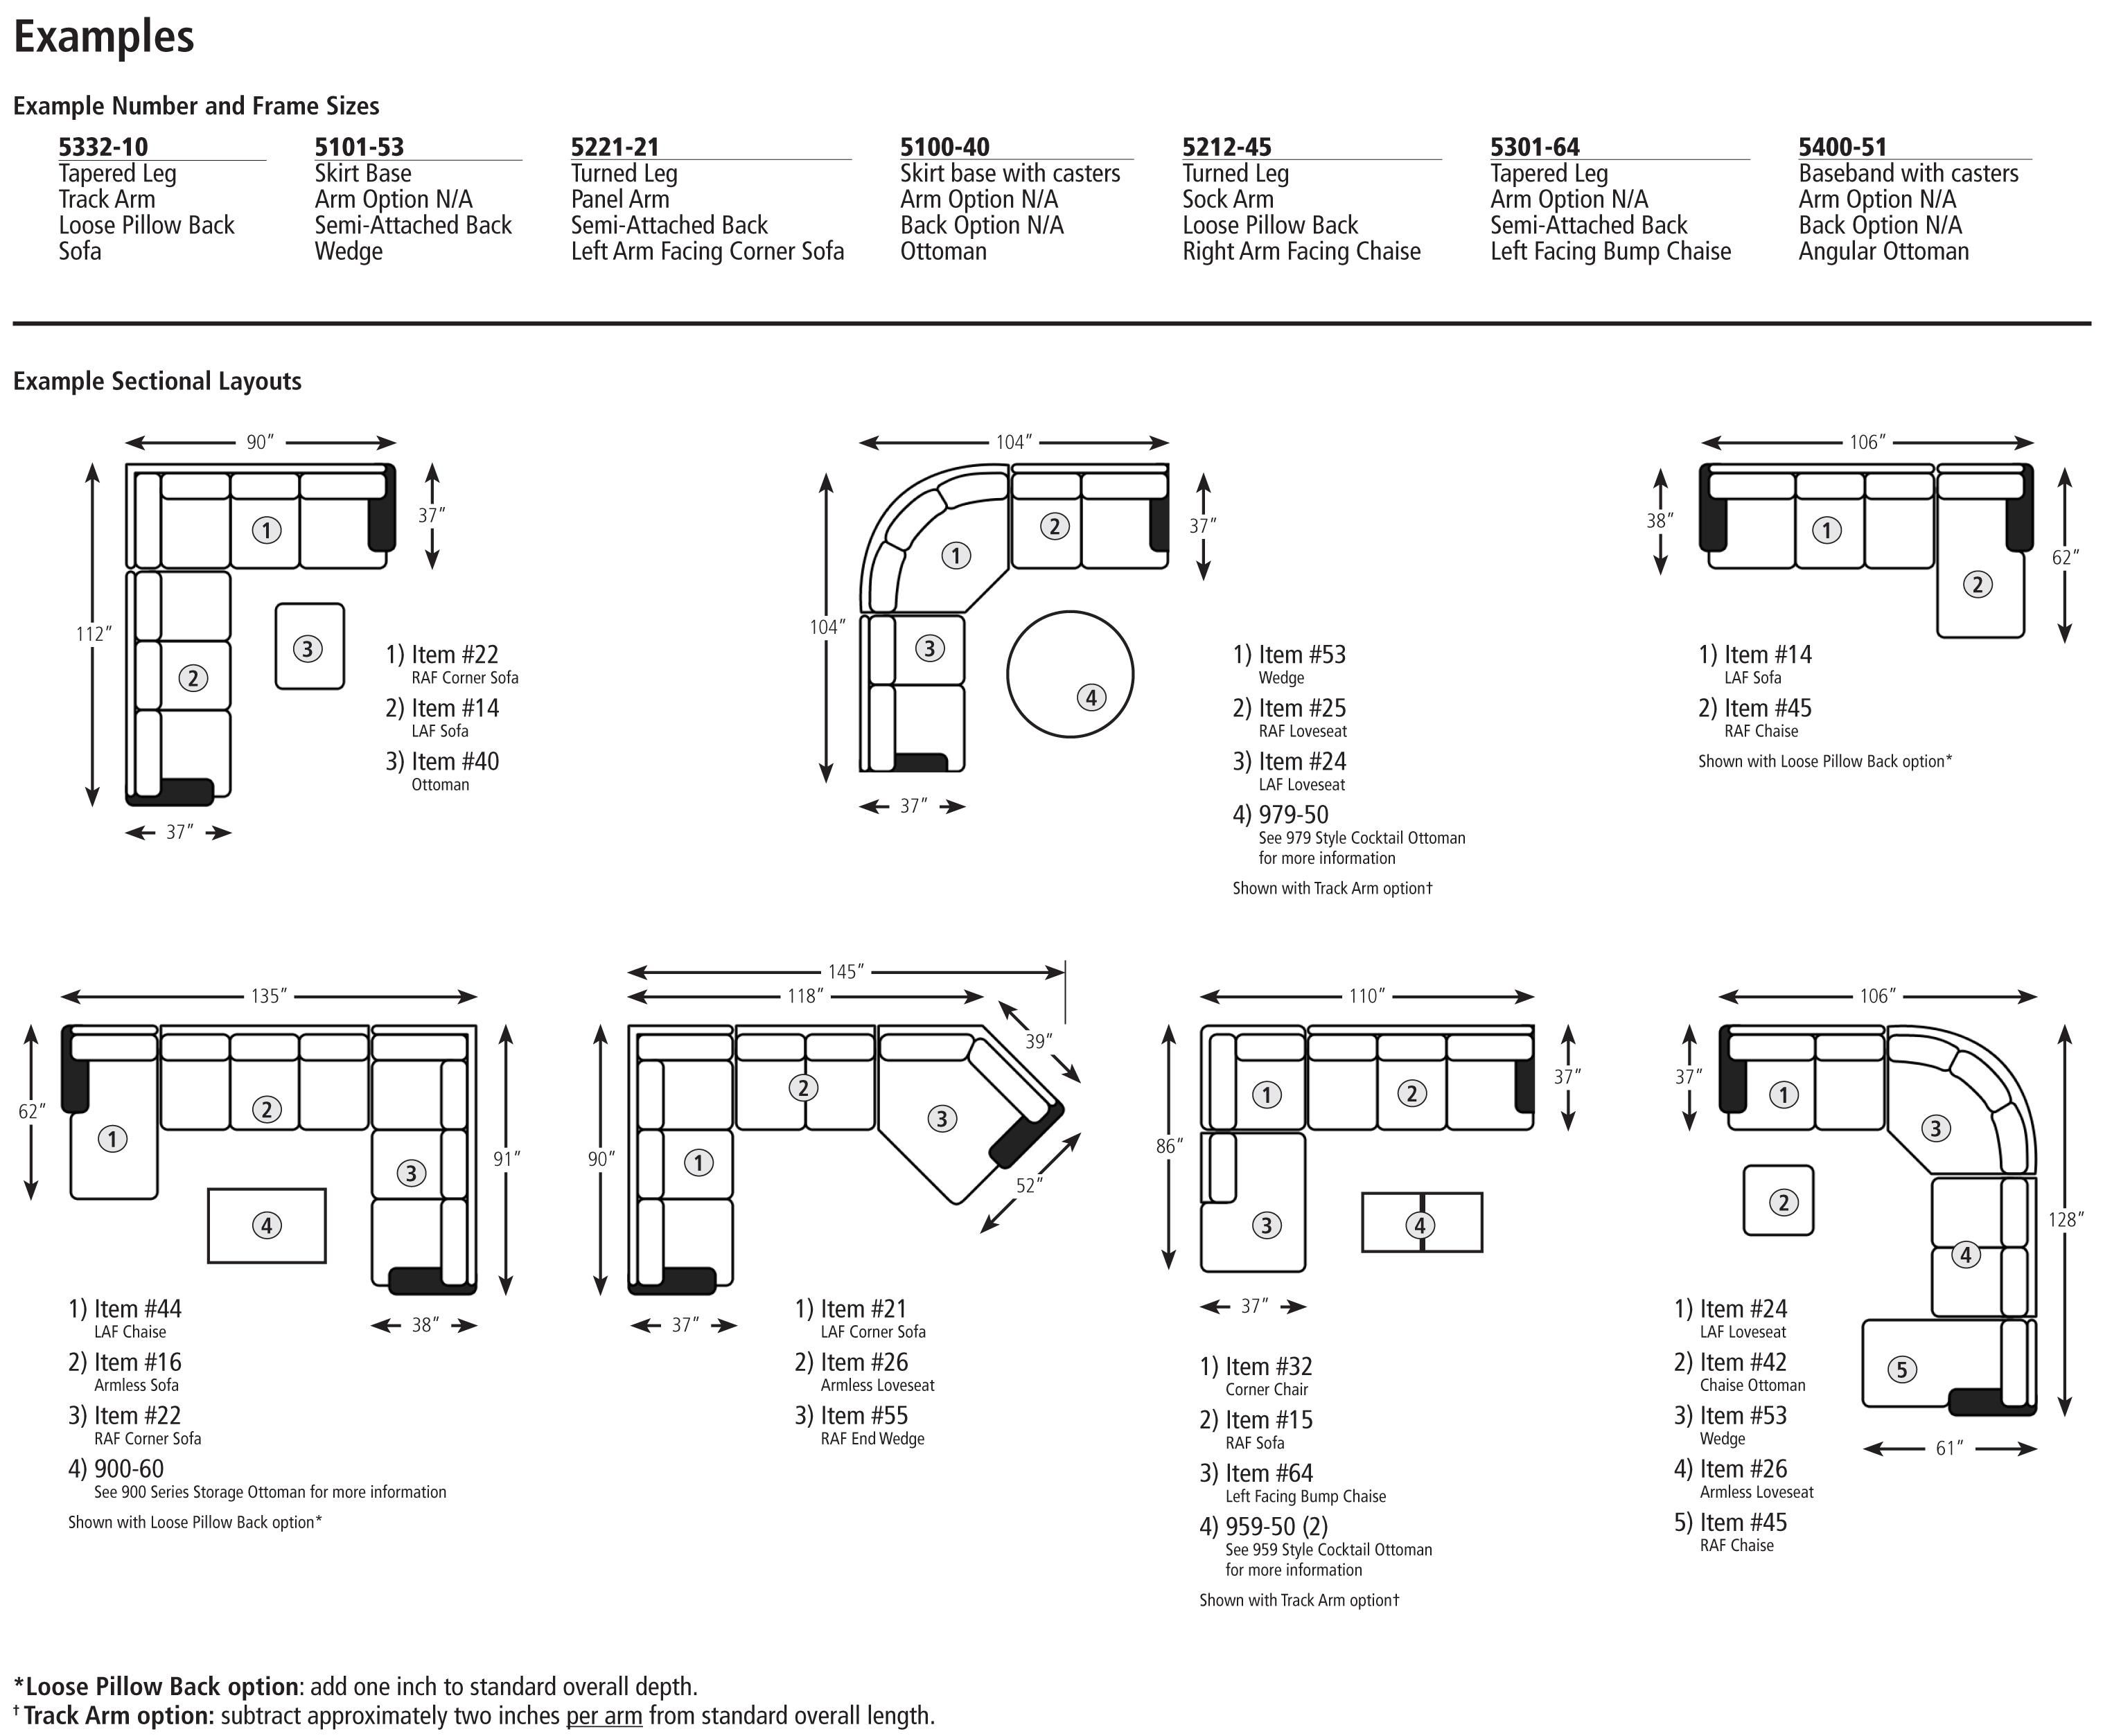 Diy sofa plans build your own couch build your own couch with - Sectional Sofa This Will Come In Handy For The Family Room Re Do Favorite Places Spaces Pinterest Sectional Sofa Room And Living Rooms